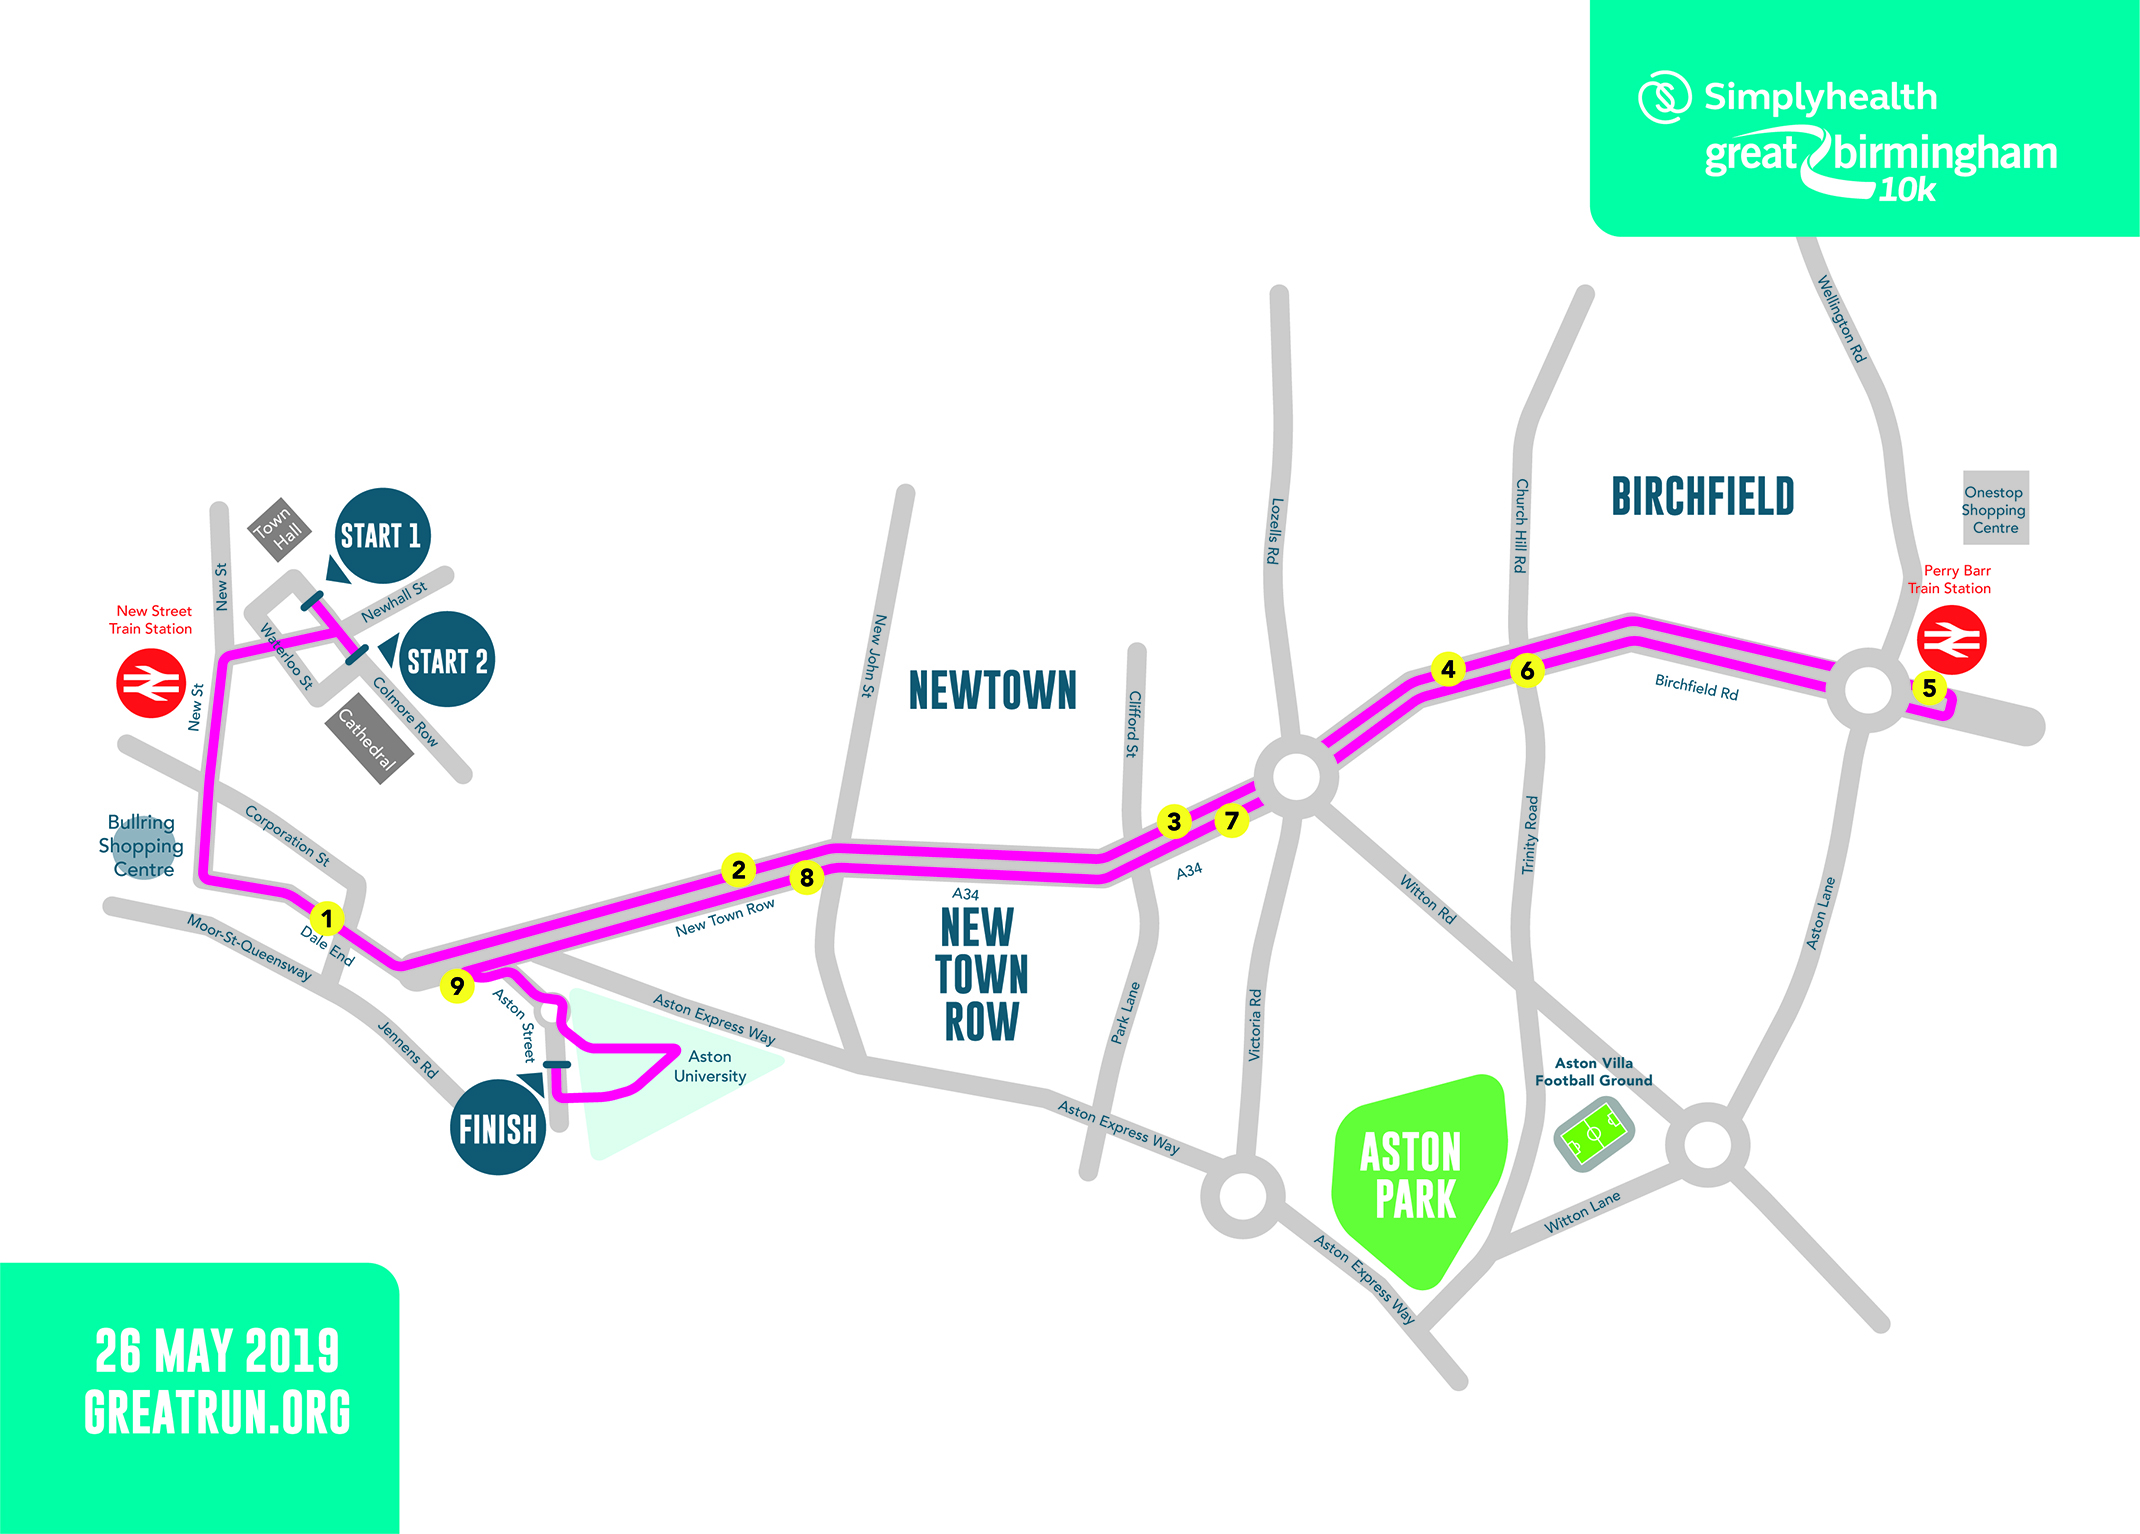 Simplyhealth Great Birmingham 10K route March 2019.jpg